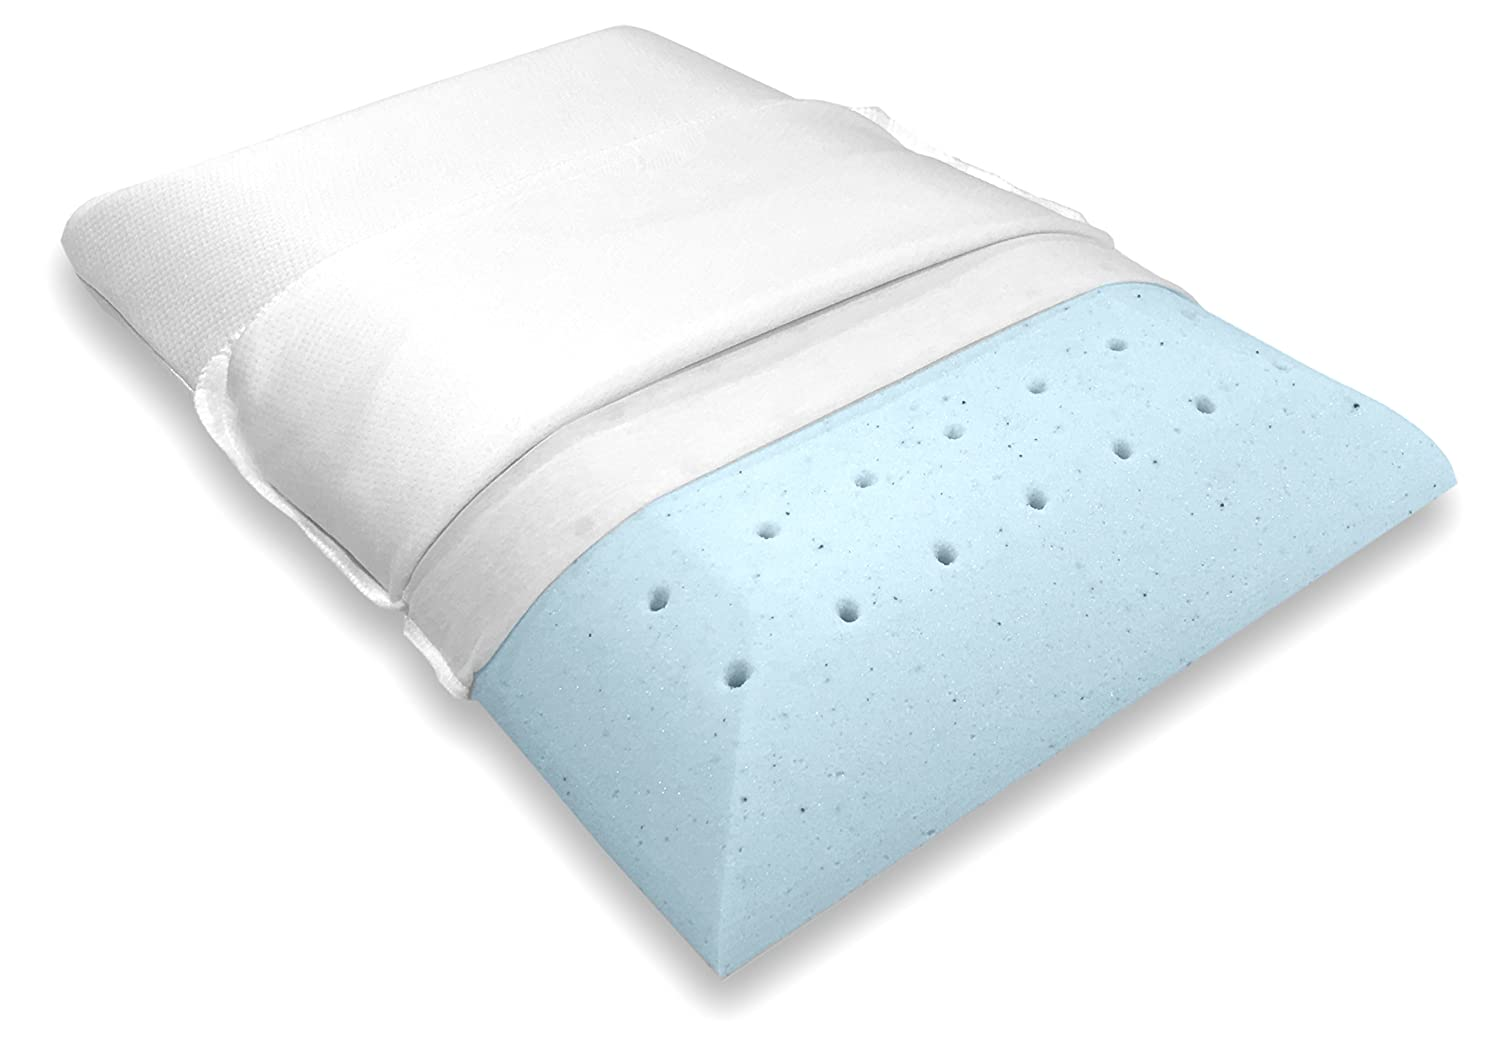 Bluewave Bedding Ultra Slim Gel Memory Foam Pillow for Stomach and Back Sleepers